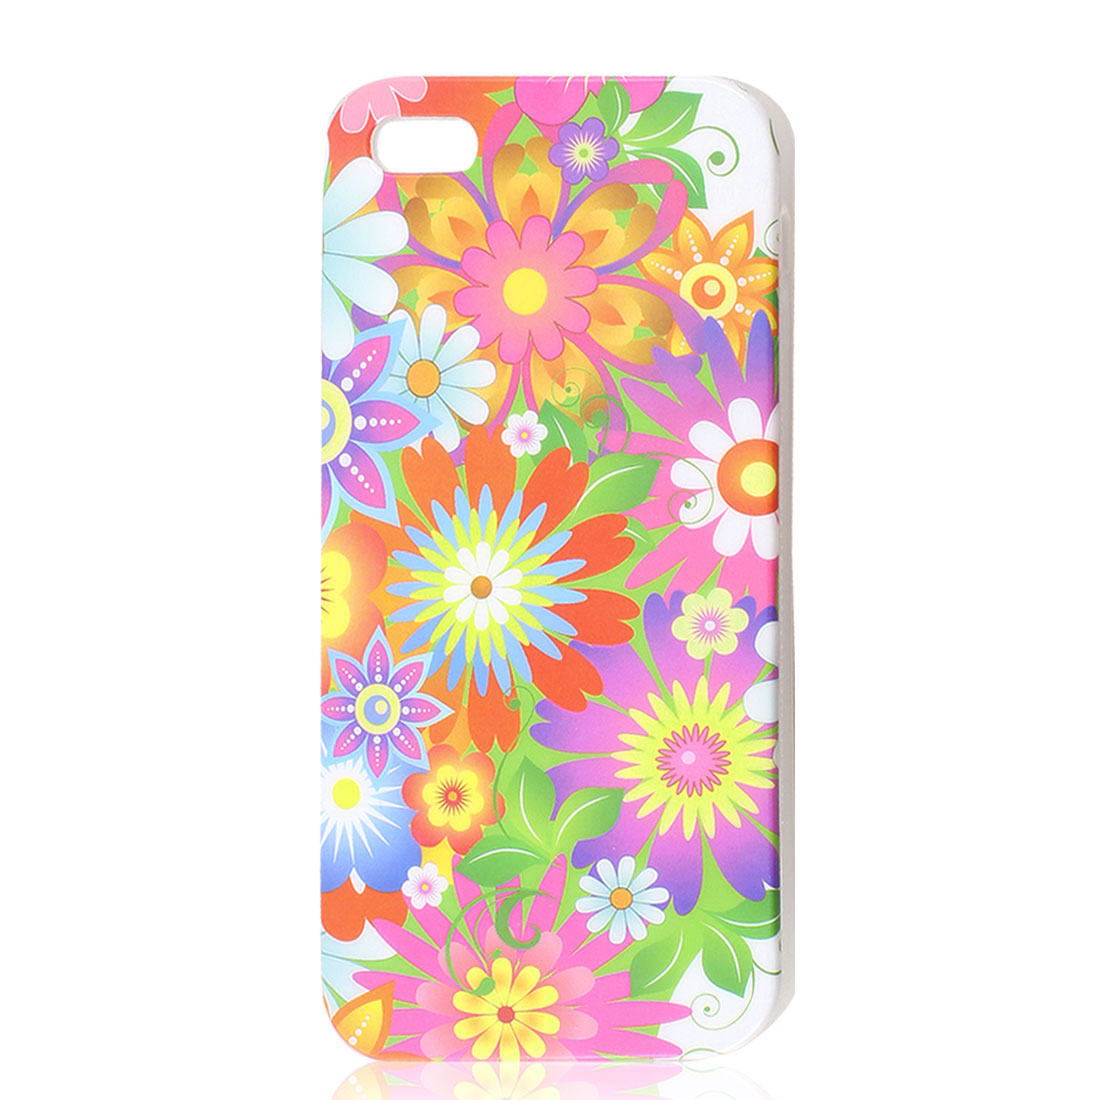 Assorted Color Flower Soft Plastic TPU Case Cover for iPhone 5 5G 5th Gen